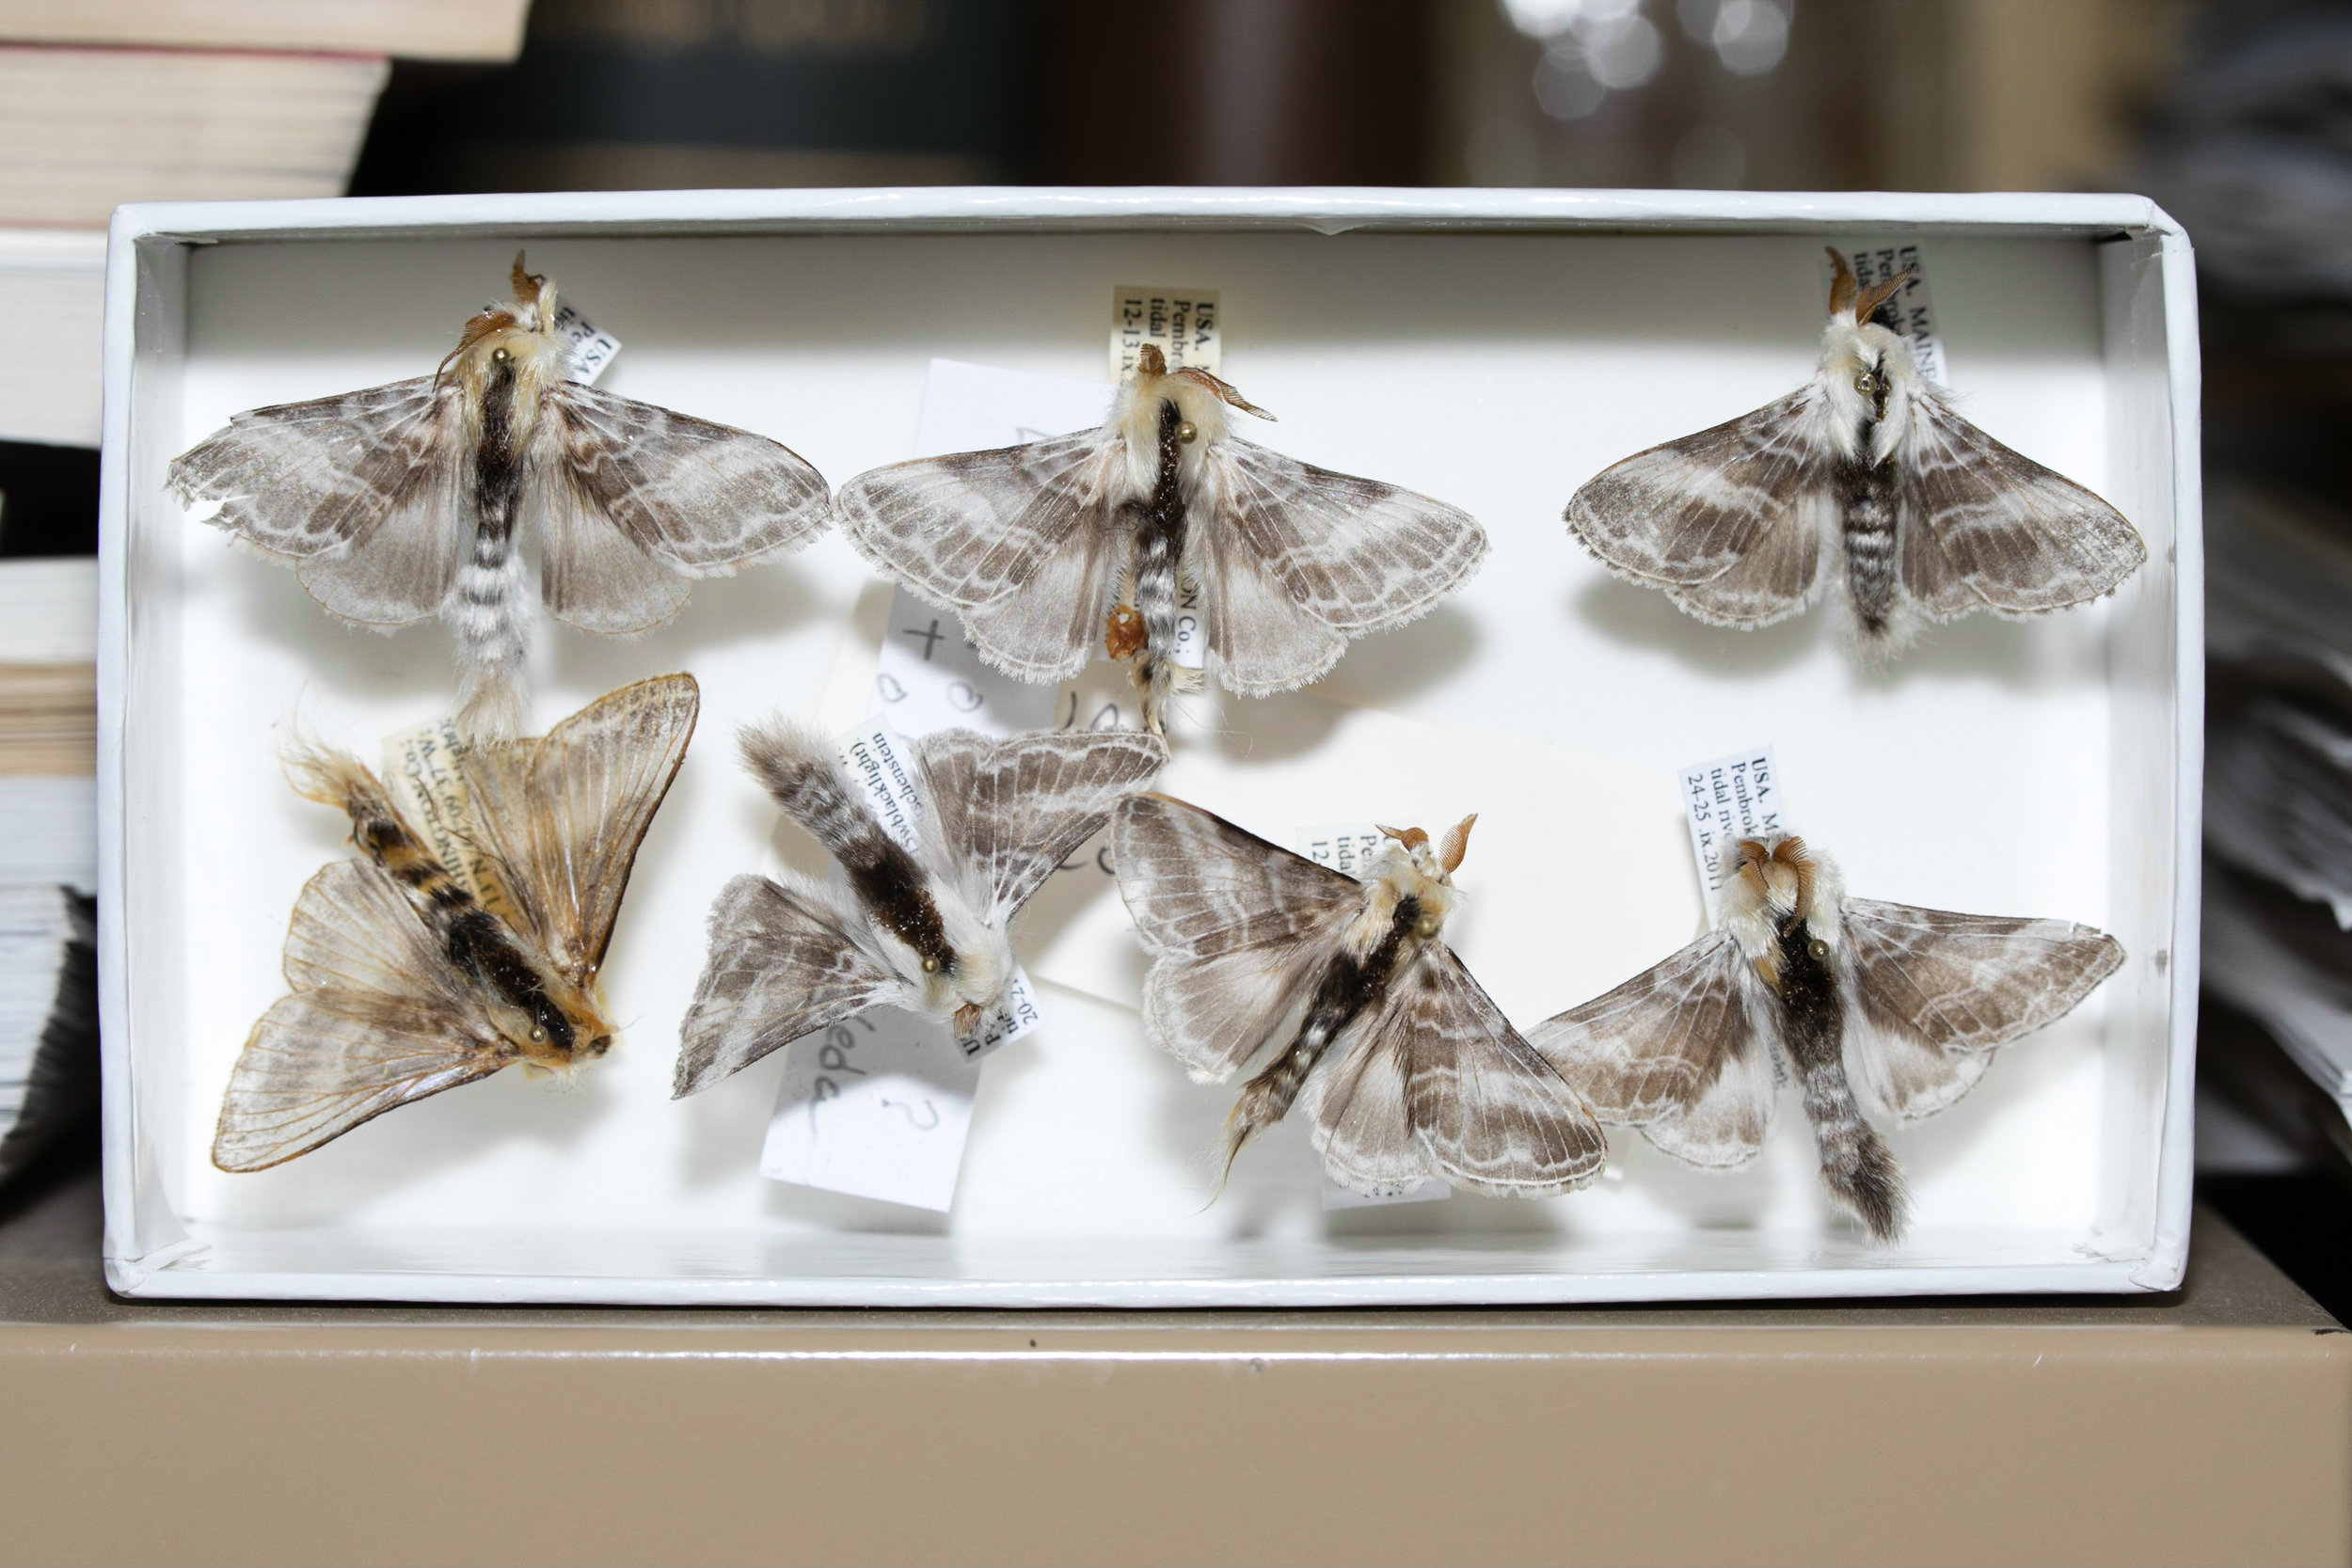 Moth specimens in a foam lined unit tray.